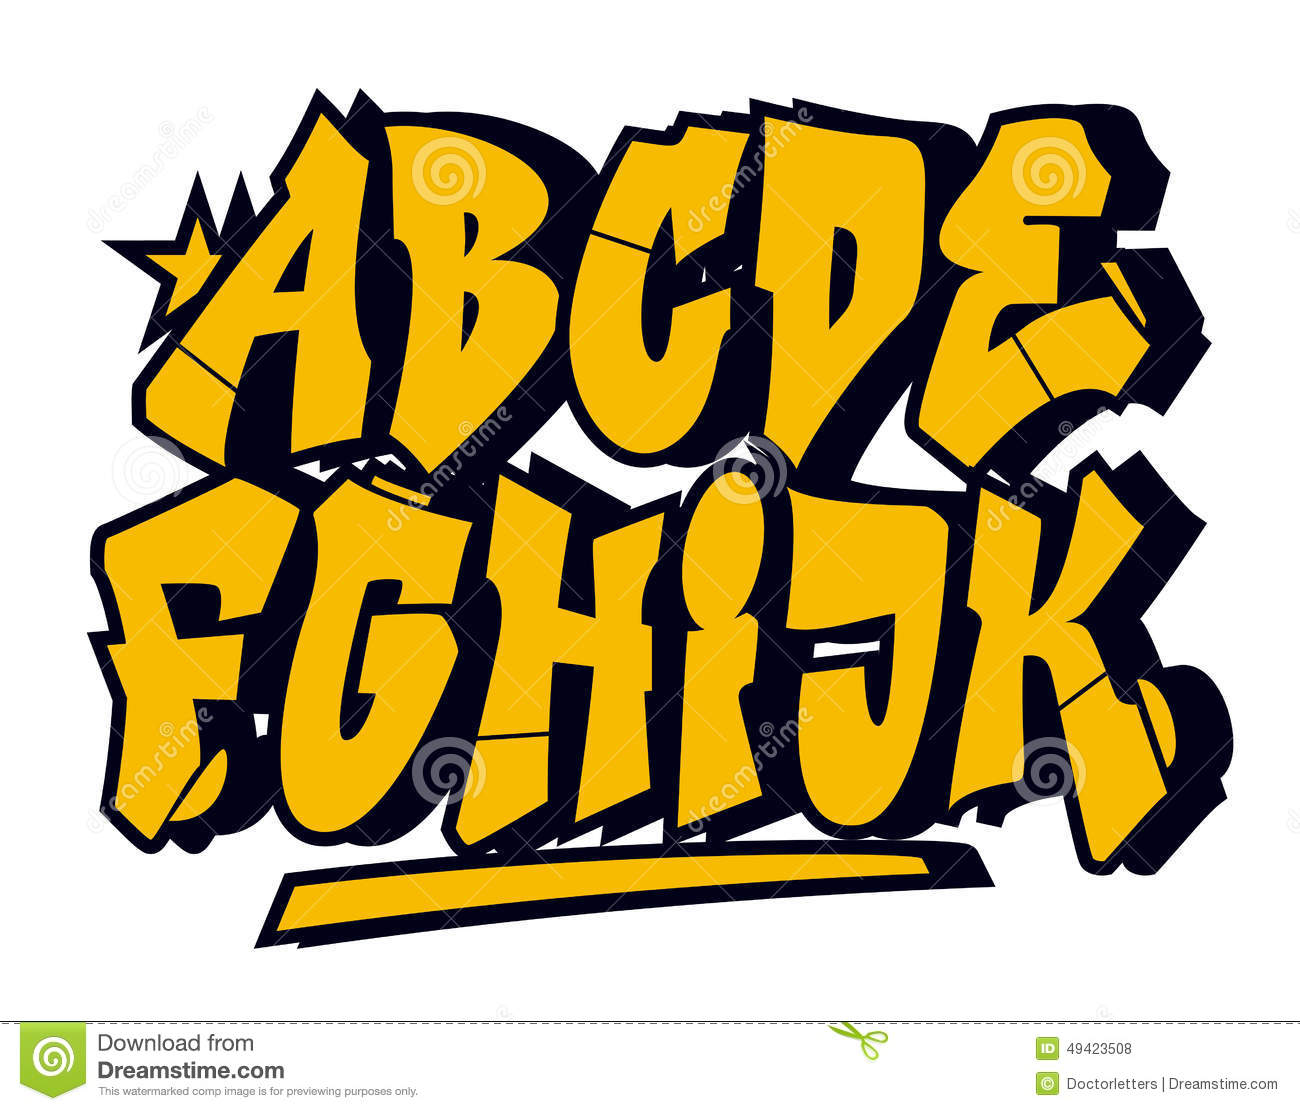 images?q=tbn:ANd9GcQh_l3eQ5xwiPy07kGEXjmjgmBKBRB7H2mRxCGhv1tFWg5c_mWT Ideas For Graffiti Vector Art Free Download @koolgadgetz.com.info